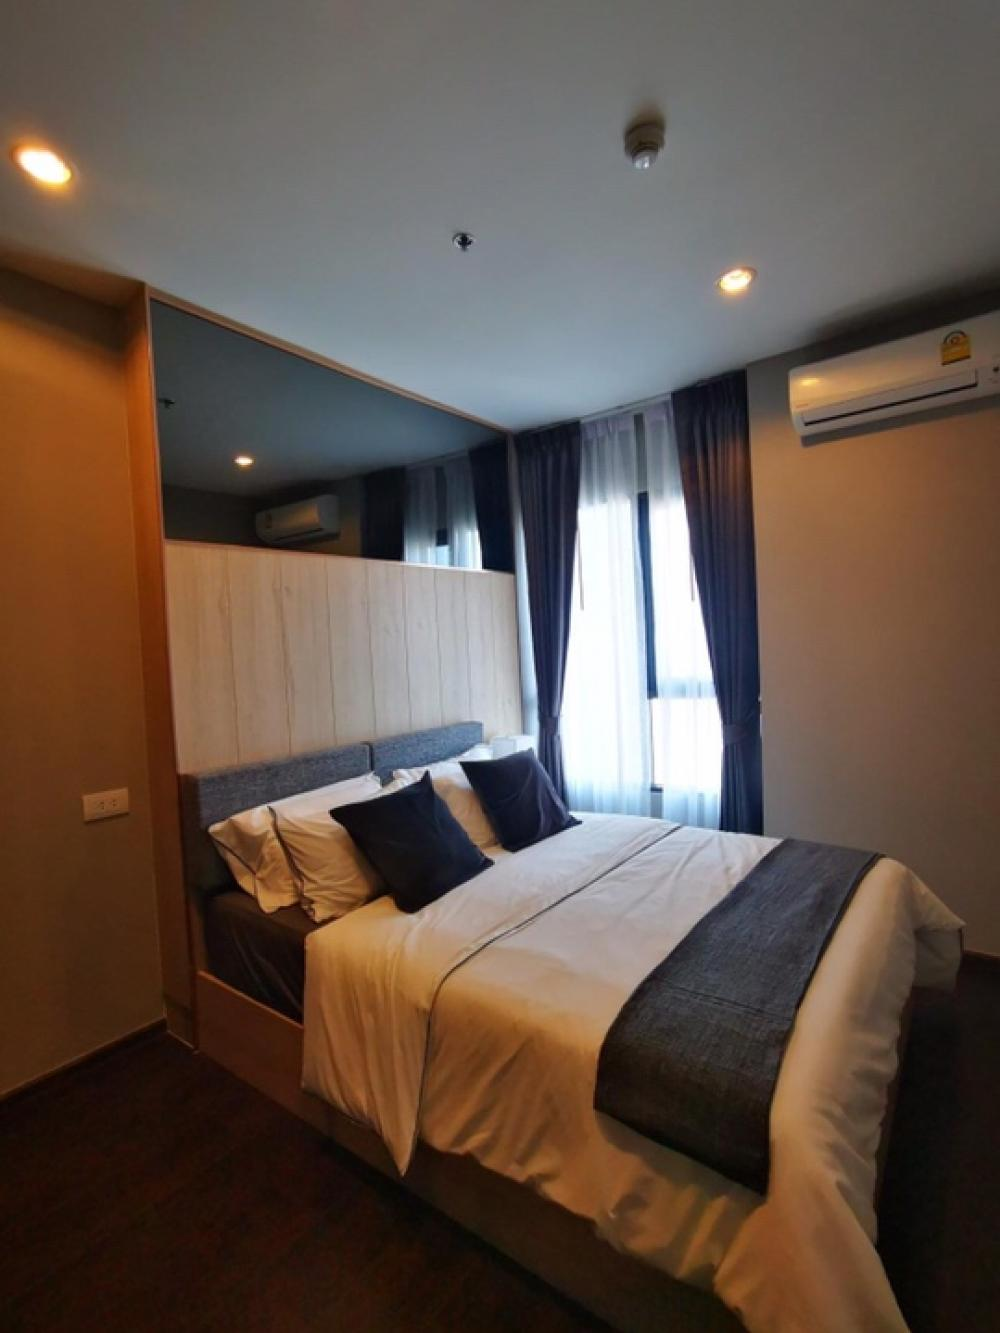 For RentCondoSukhumvit, Asoke, Thonglor : 🌼 New room for rent, C Ekkamai, 1 bedroom, 1 bathroom, 31 sqm., High ceiling on the 37th floor, very beautiful view 🔥 Near Petchaburi exit Convenient to both Asoke and Rama 9.